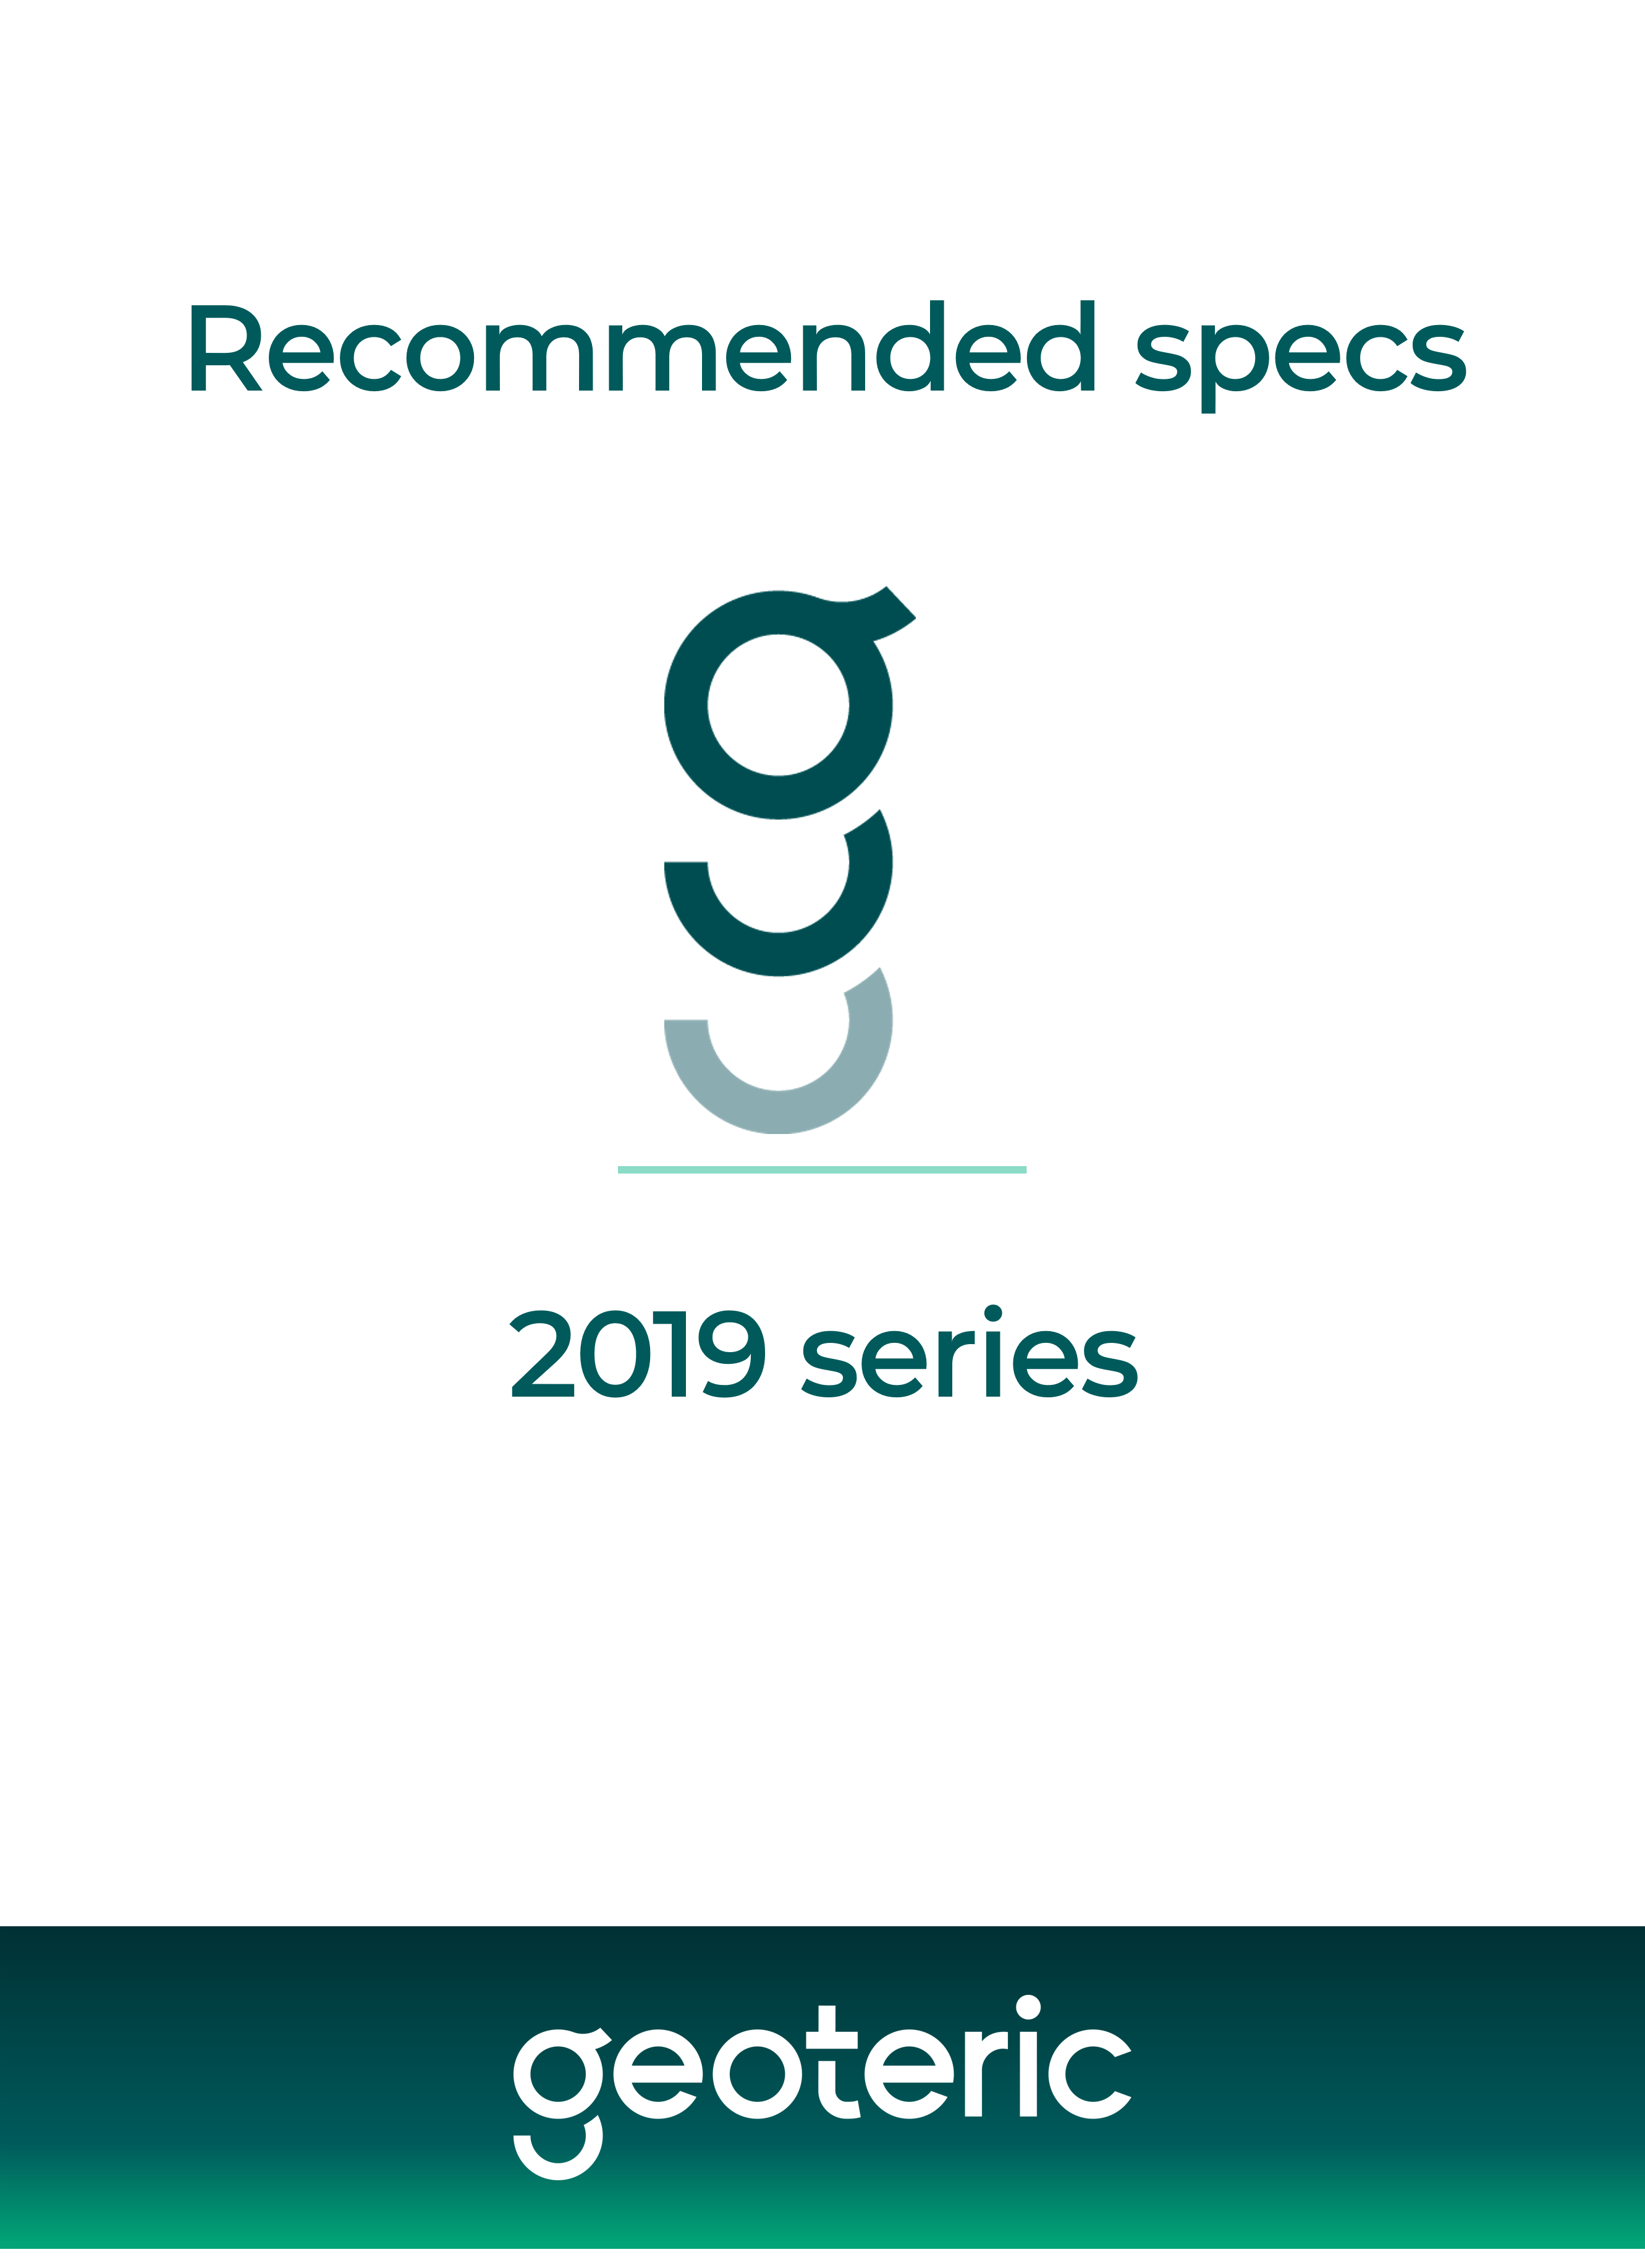 Recommended specs 2019 series